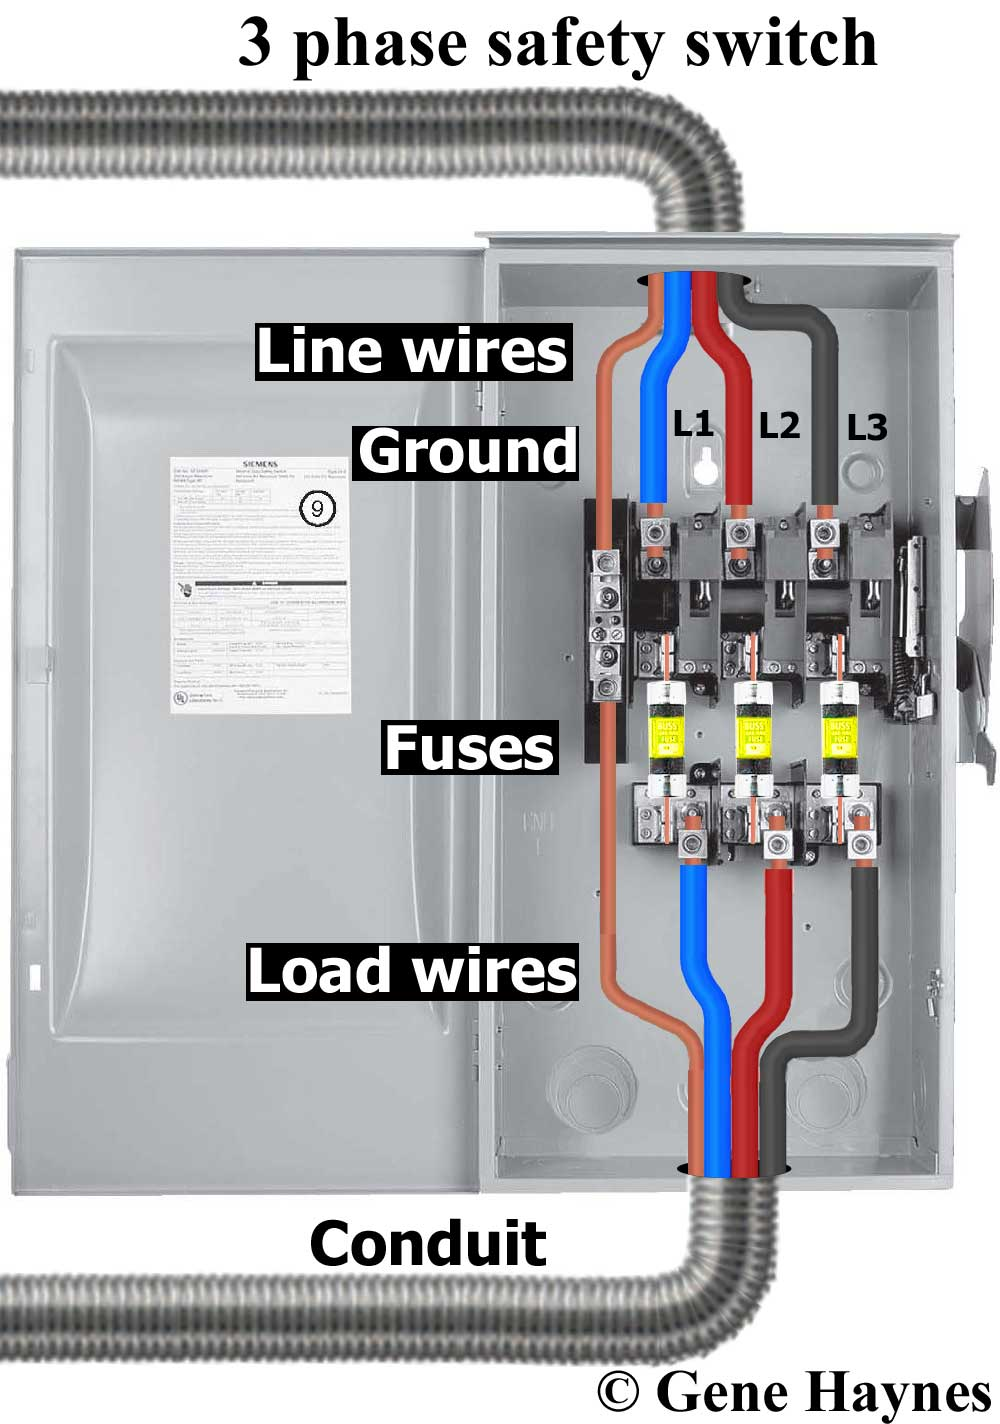 Fusable safety fuse how to wire safety switch 3 pole 4 wire grounding diagram at bakdesigns.co